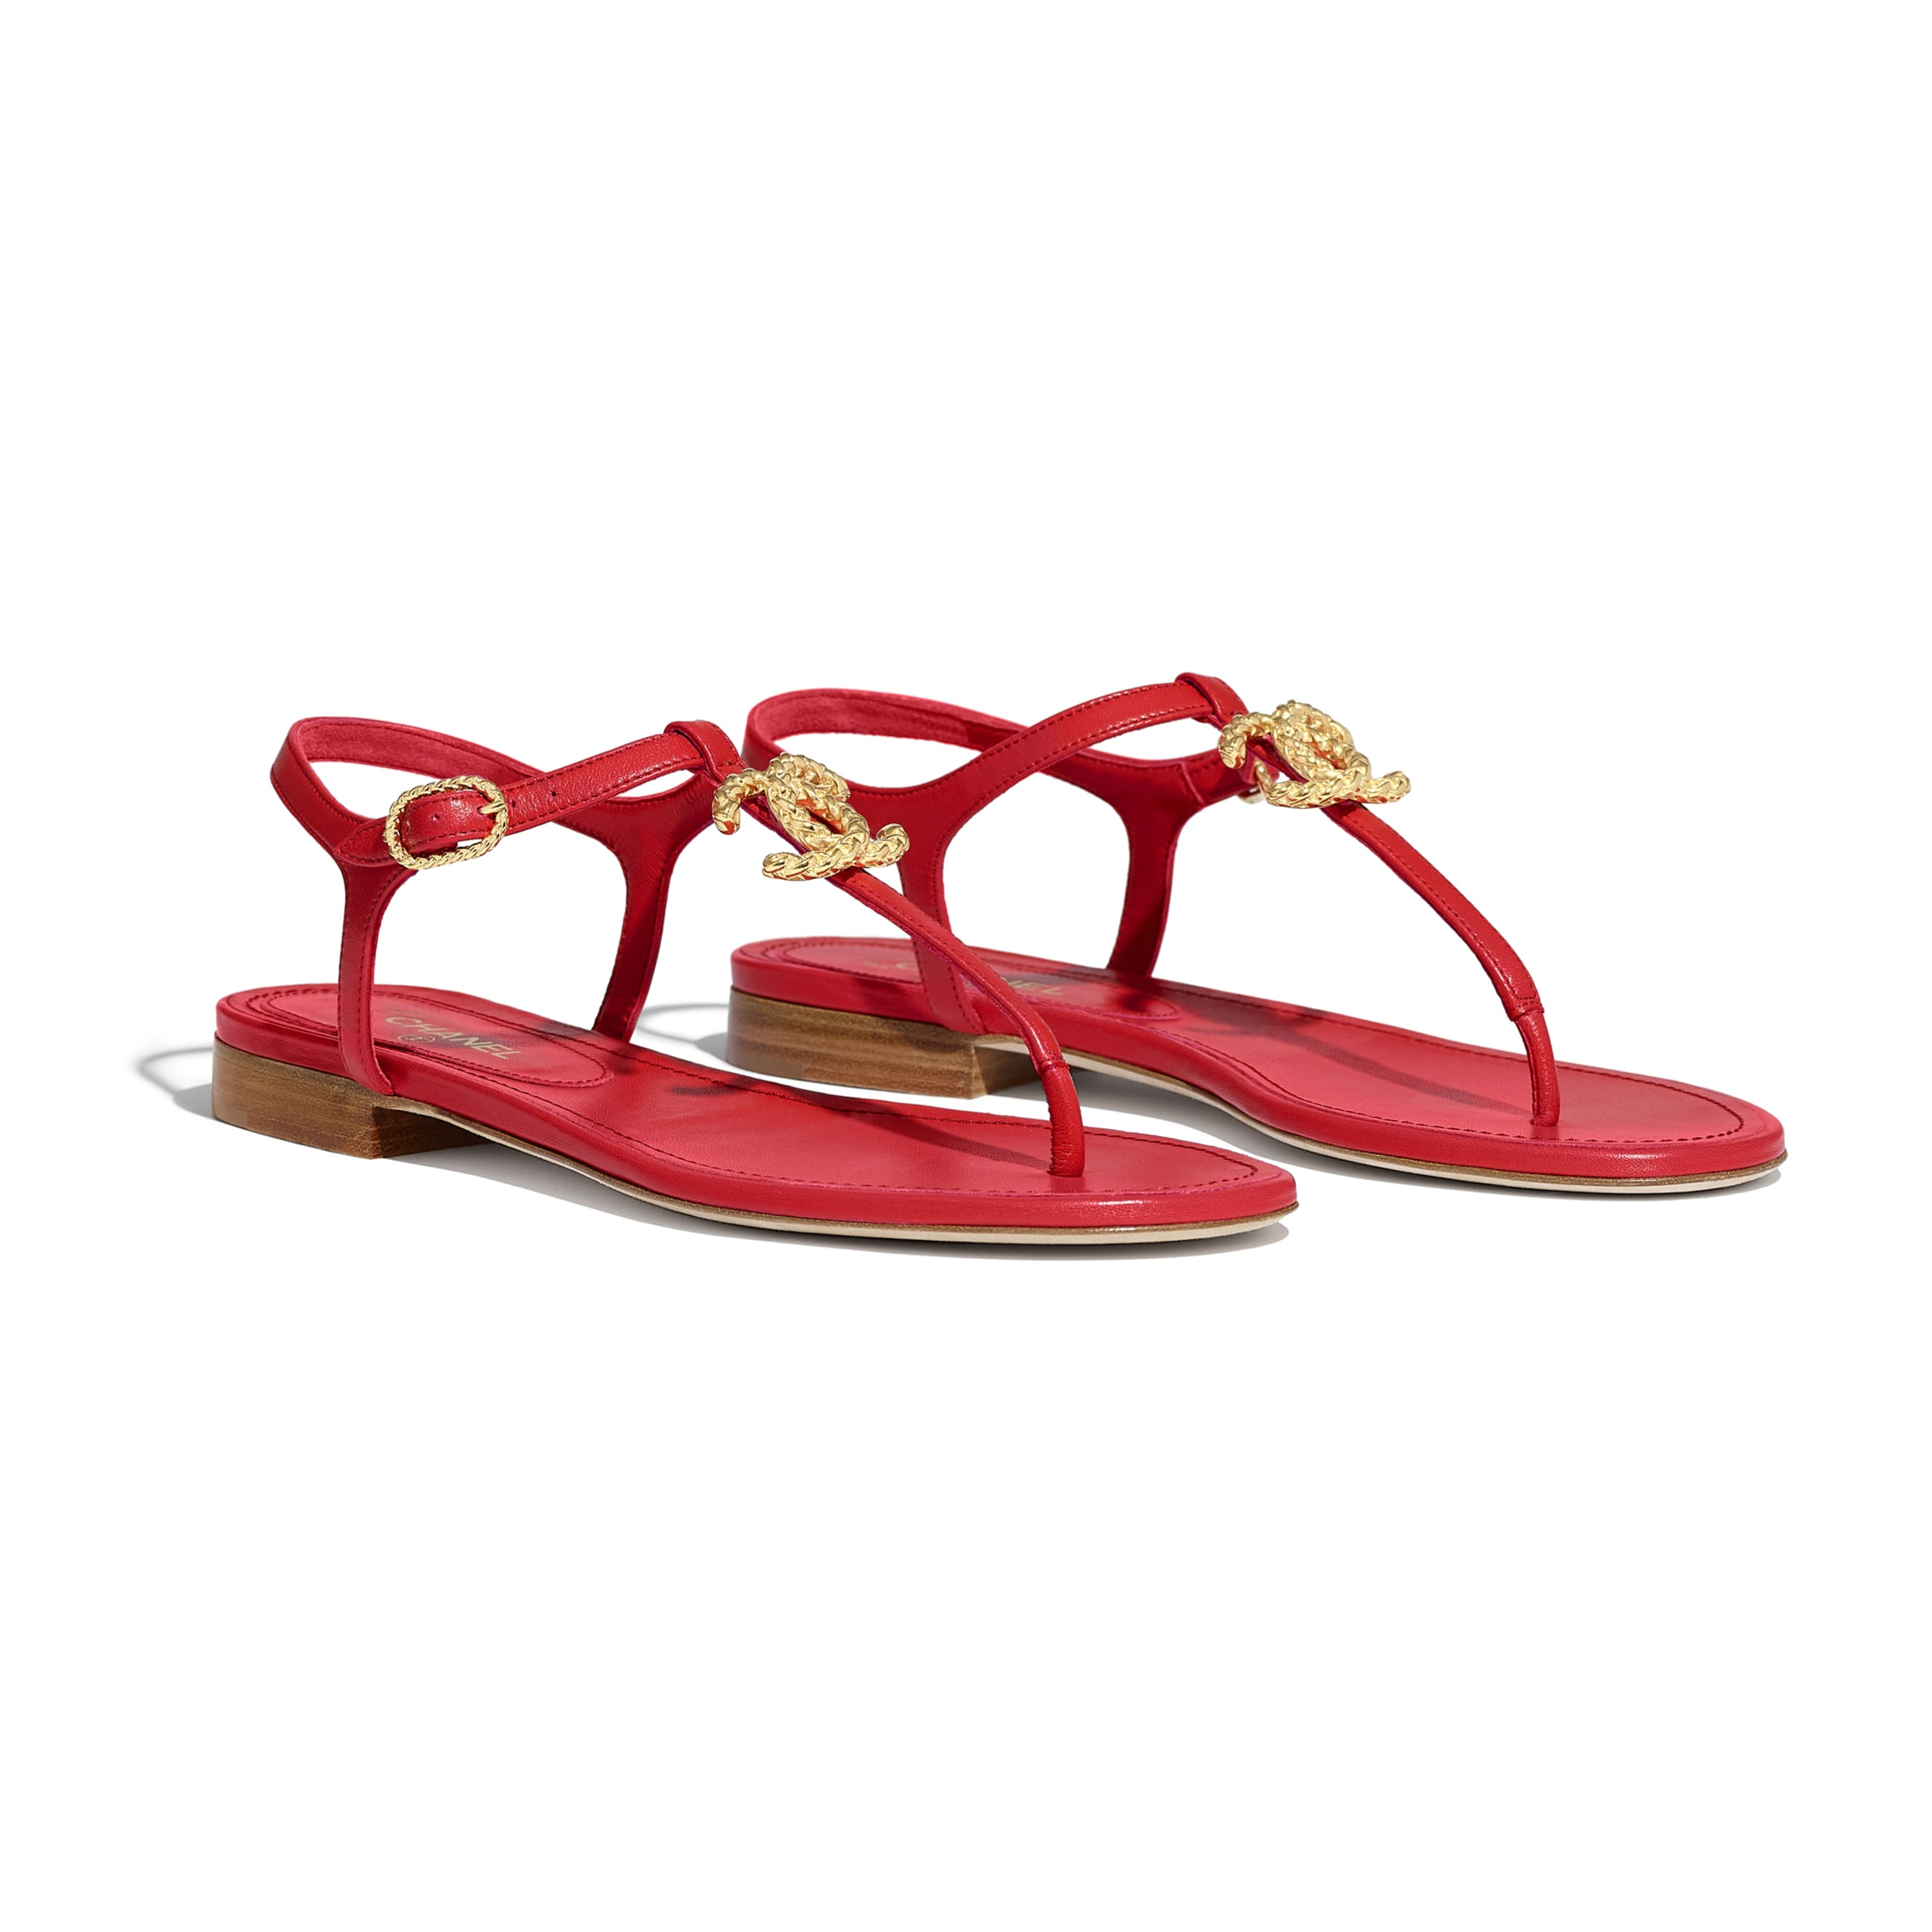 Sandals - Red - Lambskin - CHANEL - Alternative view - see standard sized version